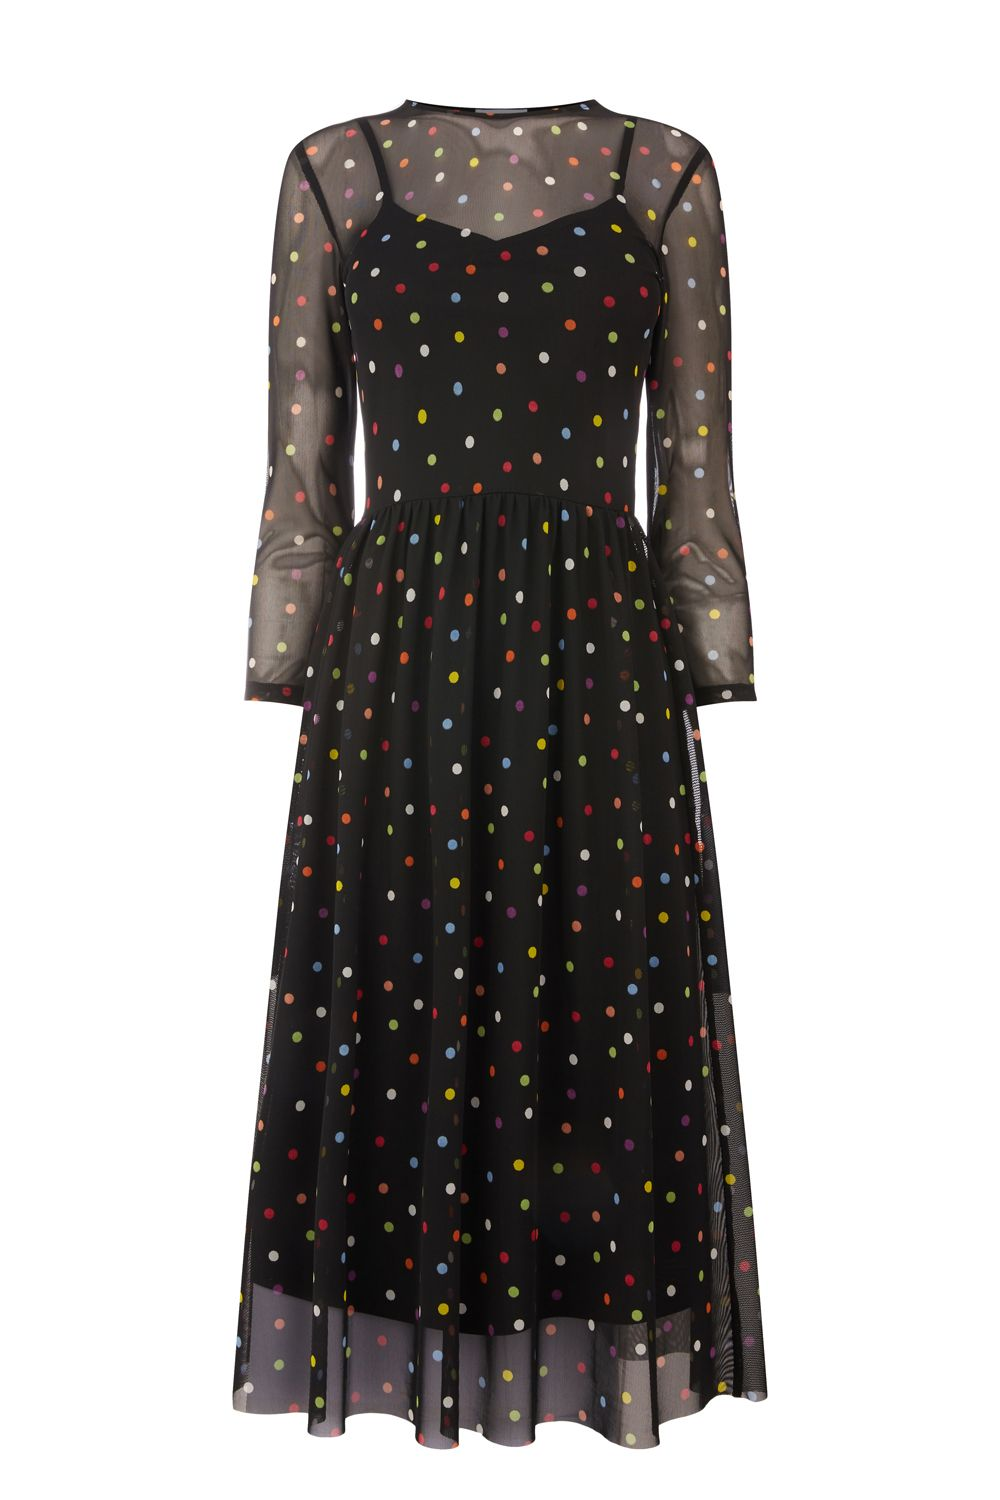 Warehouse Rainbow Spot Mesh Dress, Black